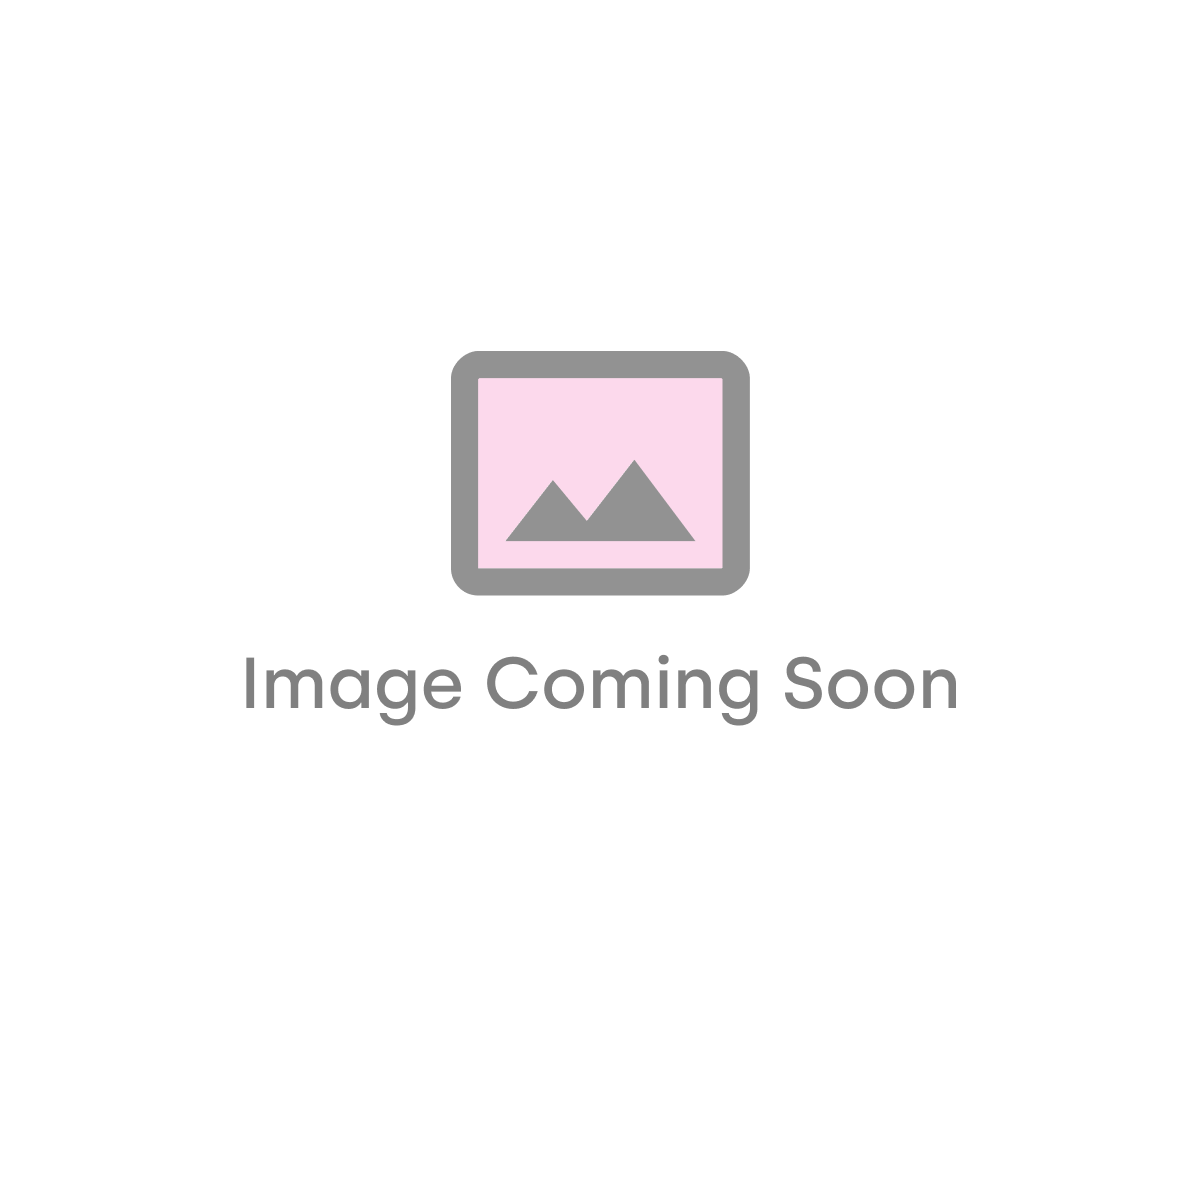 Roma Straight Heated Towel Rail  - 1200mm x 500mm - White (19725)